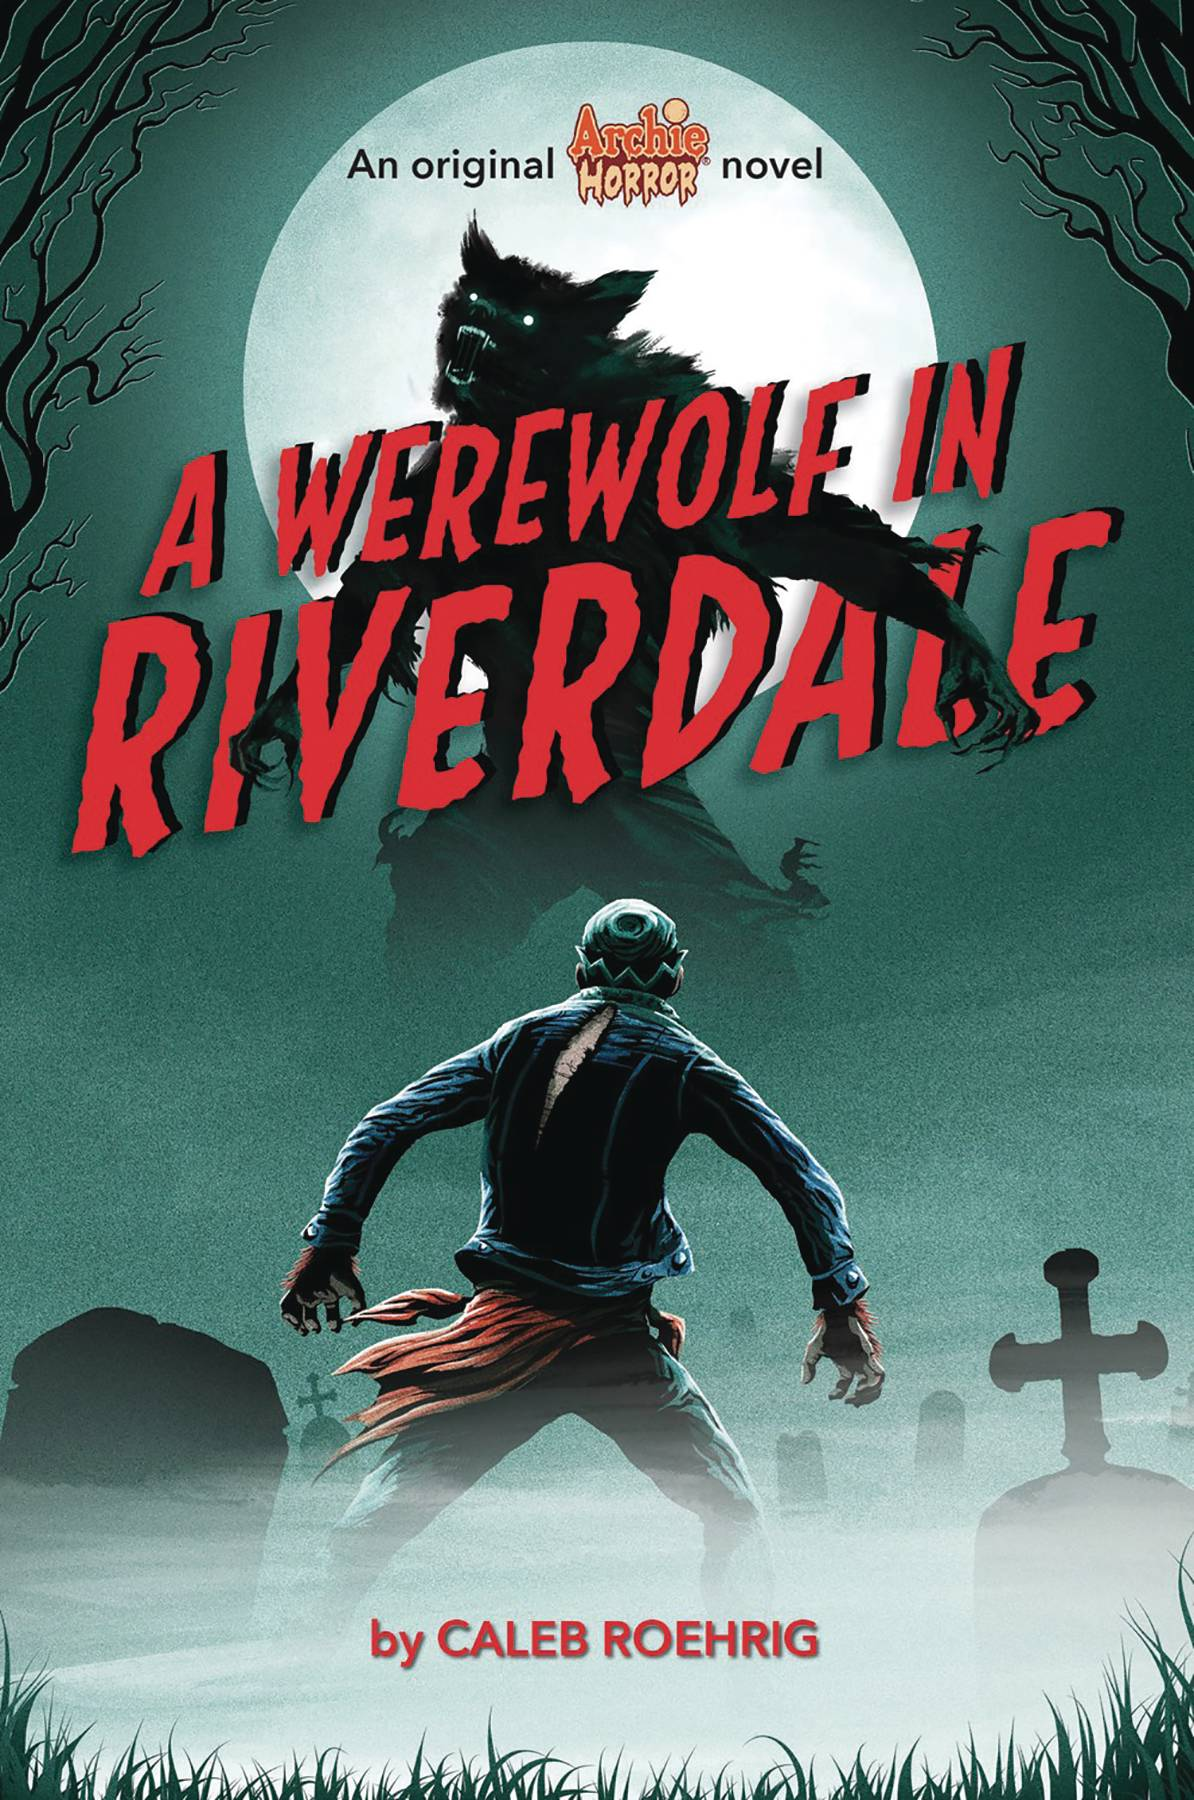 ARCHIE HORROR NOVEL SC VOL 01 WEREWOLF IN RIVERDALE